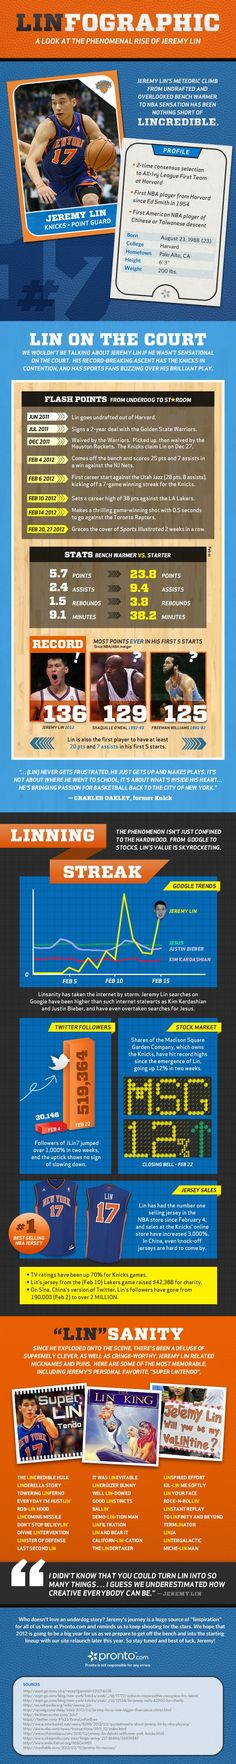 The Legend of Jeremy Lin - Linfographic